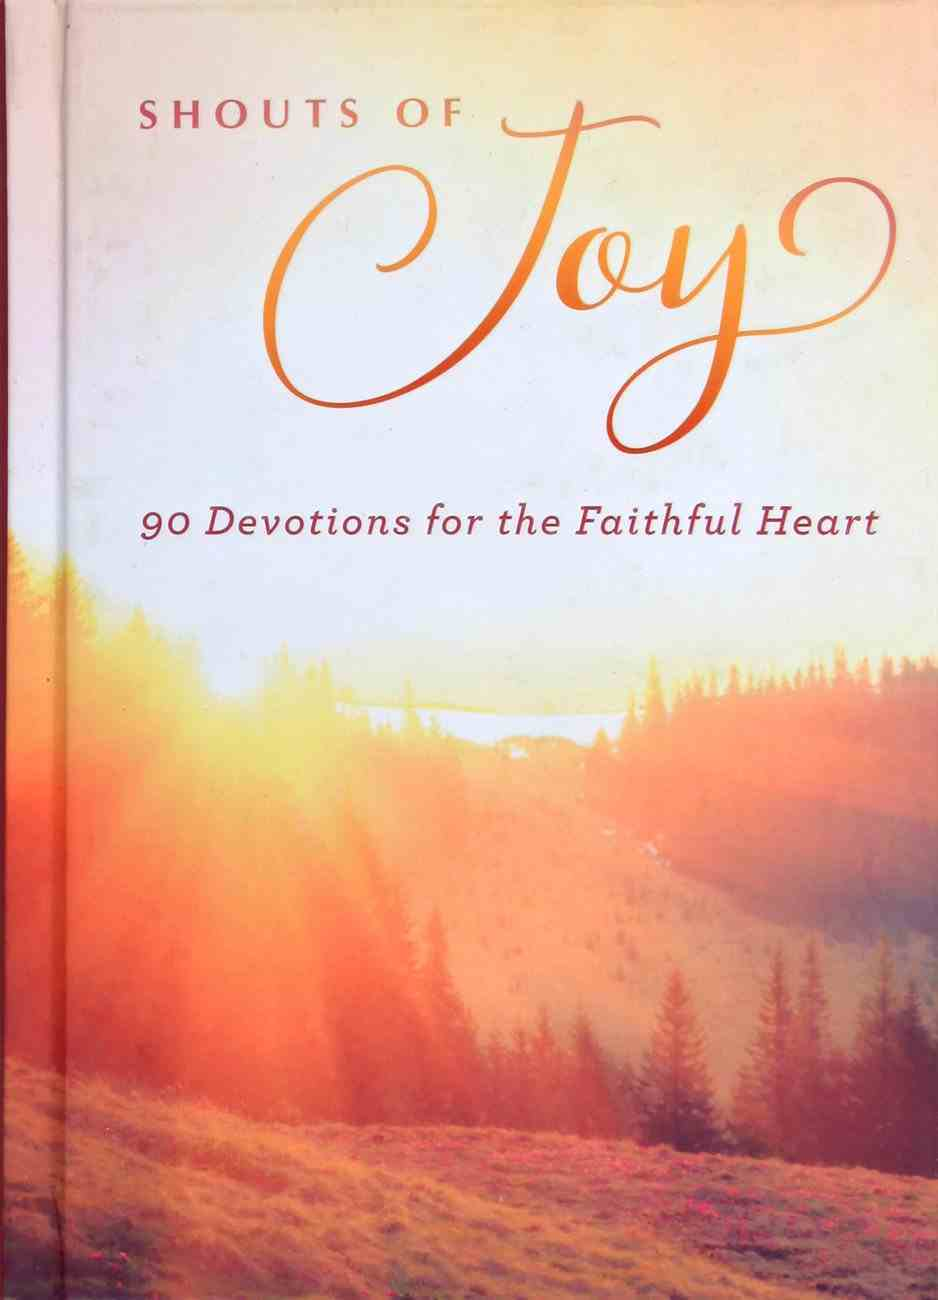 Shouts of Joy: 90 Devotions For the Faithful Heart Hardback